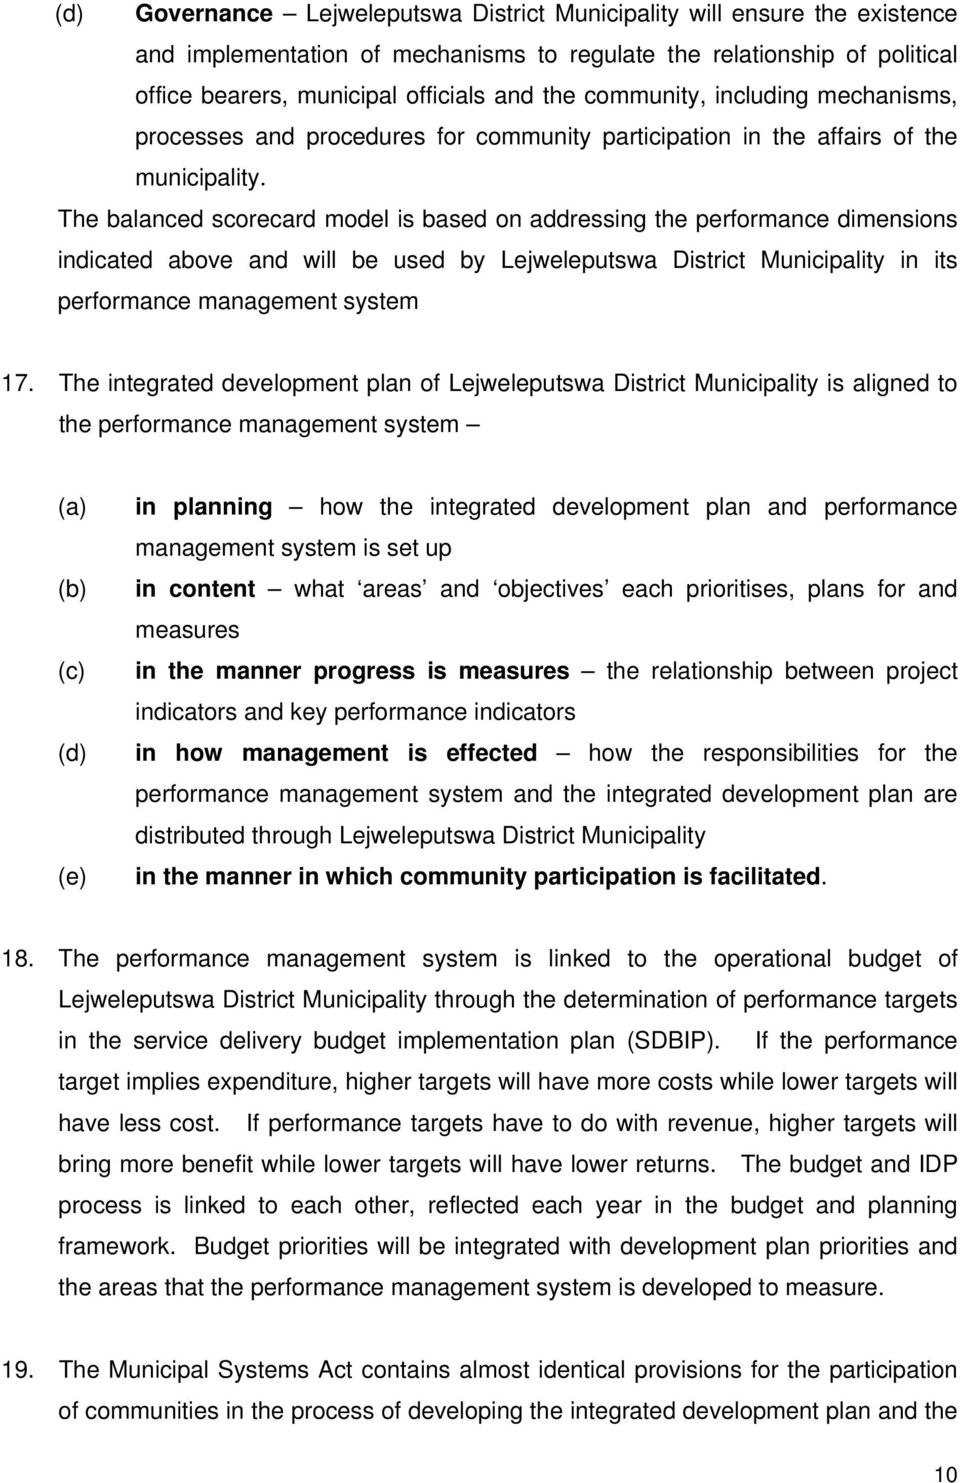 The balanced scorecard model is based on addressing the performance dimensions indicated above and will be used by Lejweleputswa District Municipality in its performance management system 17.